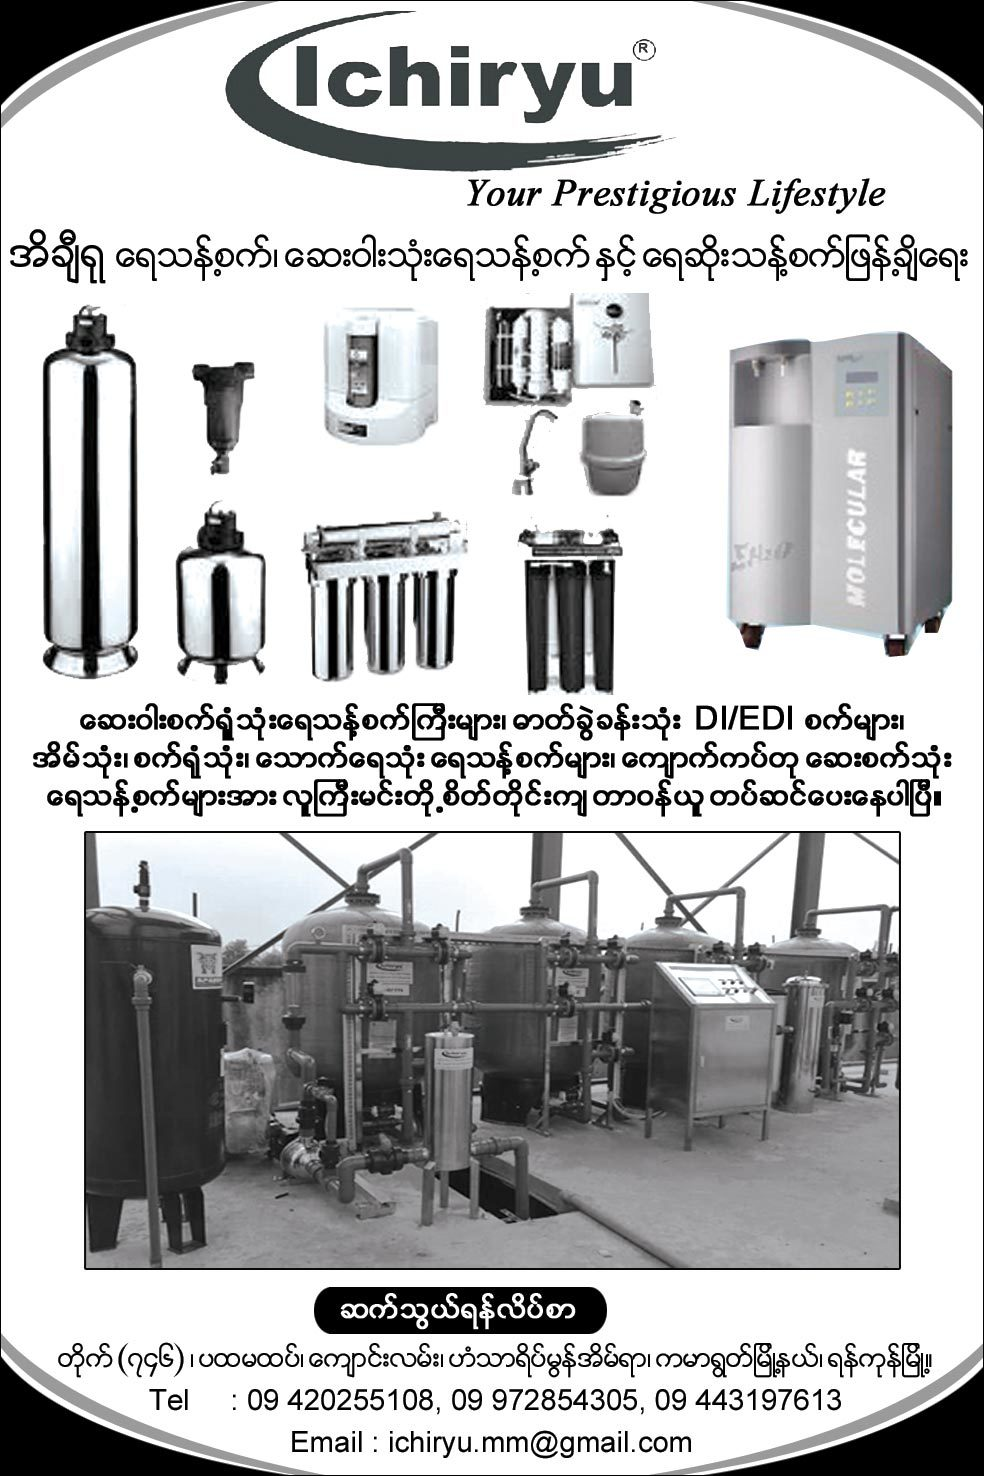 Ichiryu-Water-Treatment_Water-Treatment-System_(A)_1068.jpg